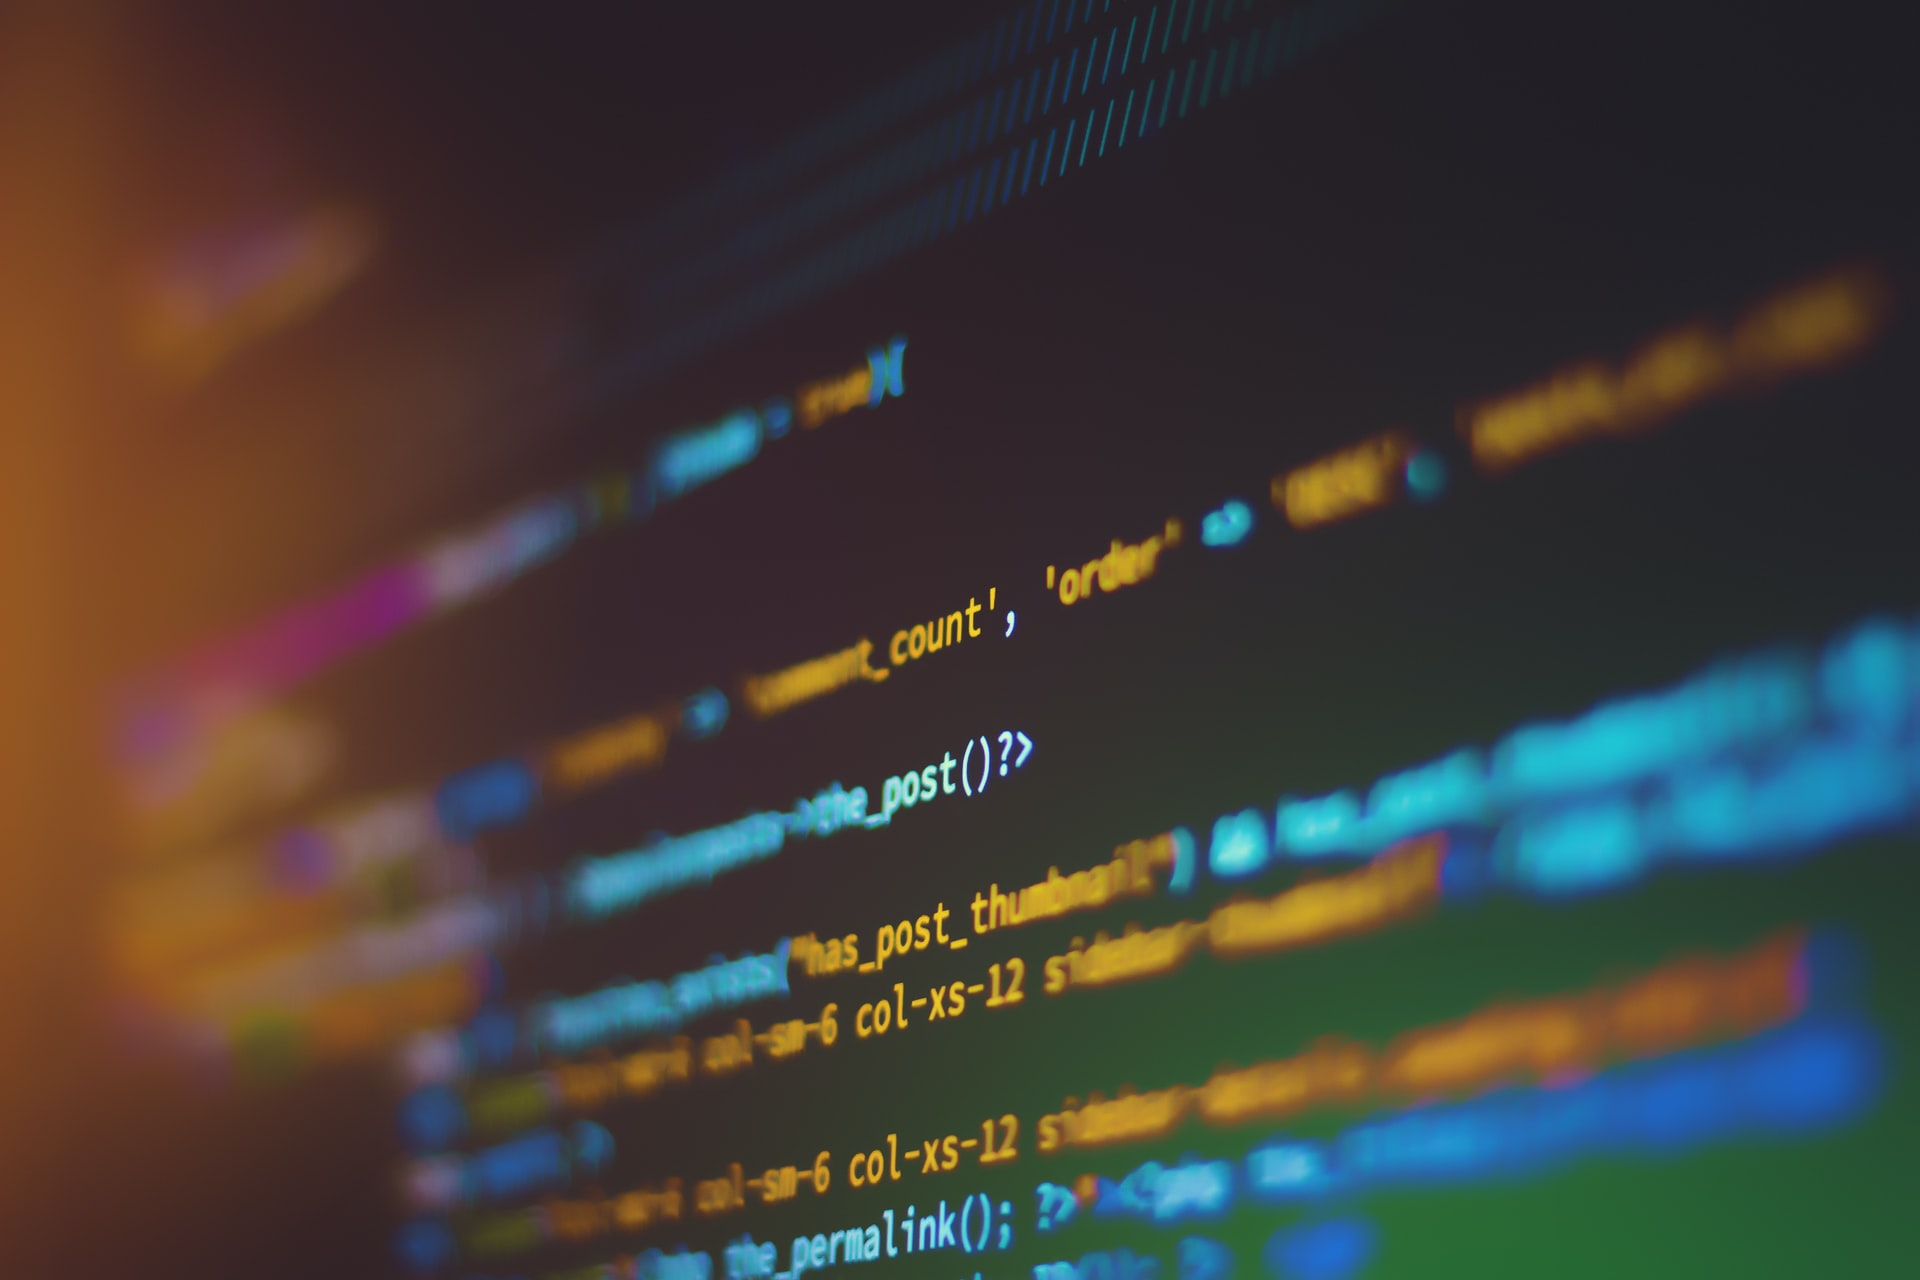 Certification is the Best for Python